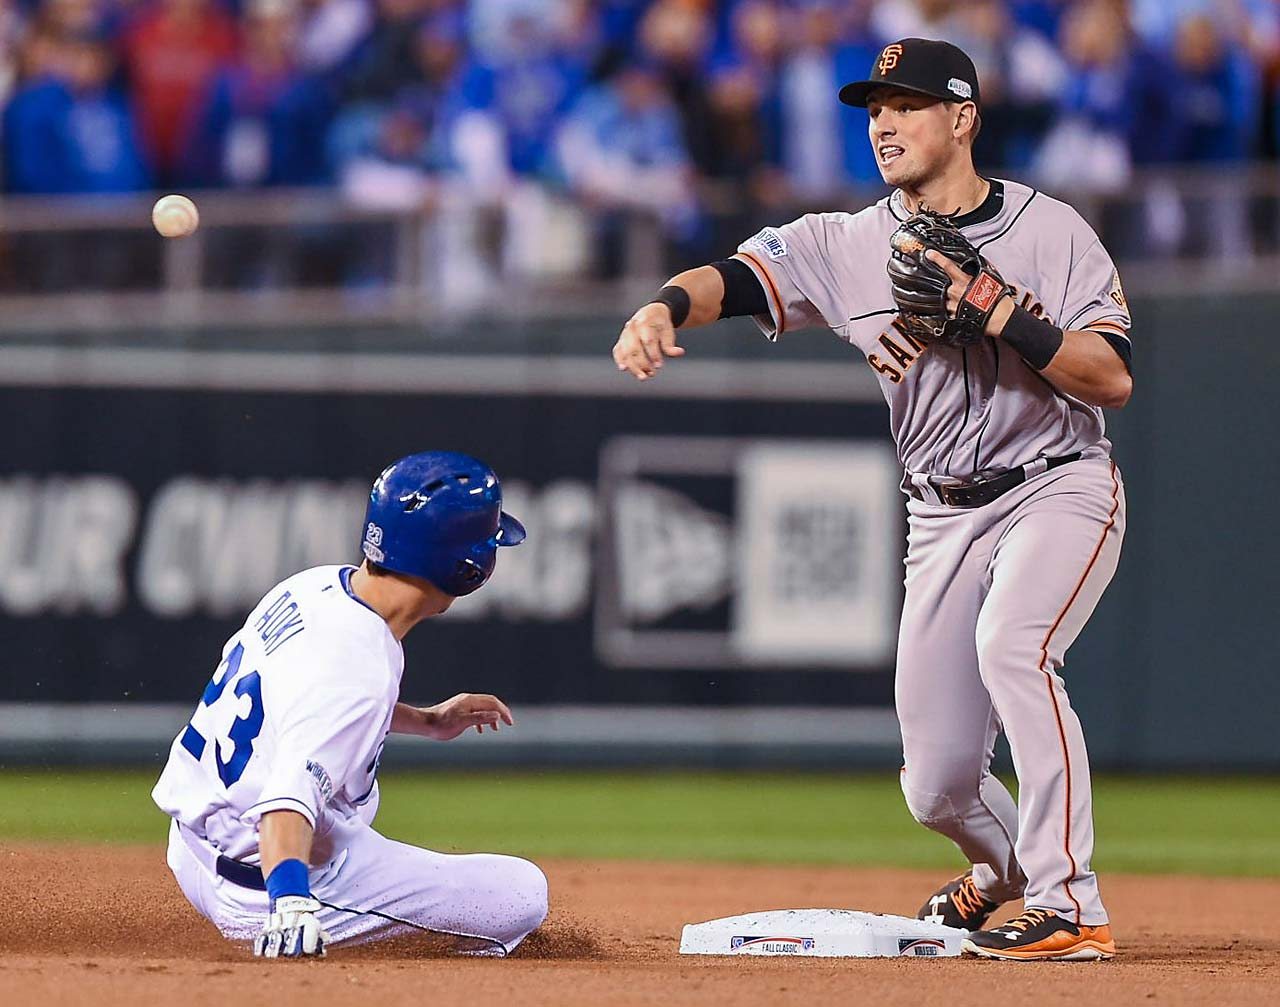 Joe Panik made his major league debut in May and five months later is a World Series champion.